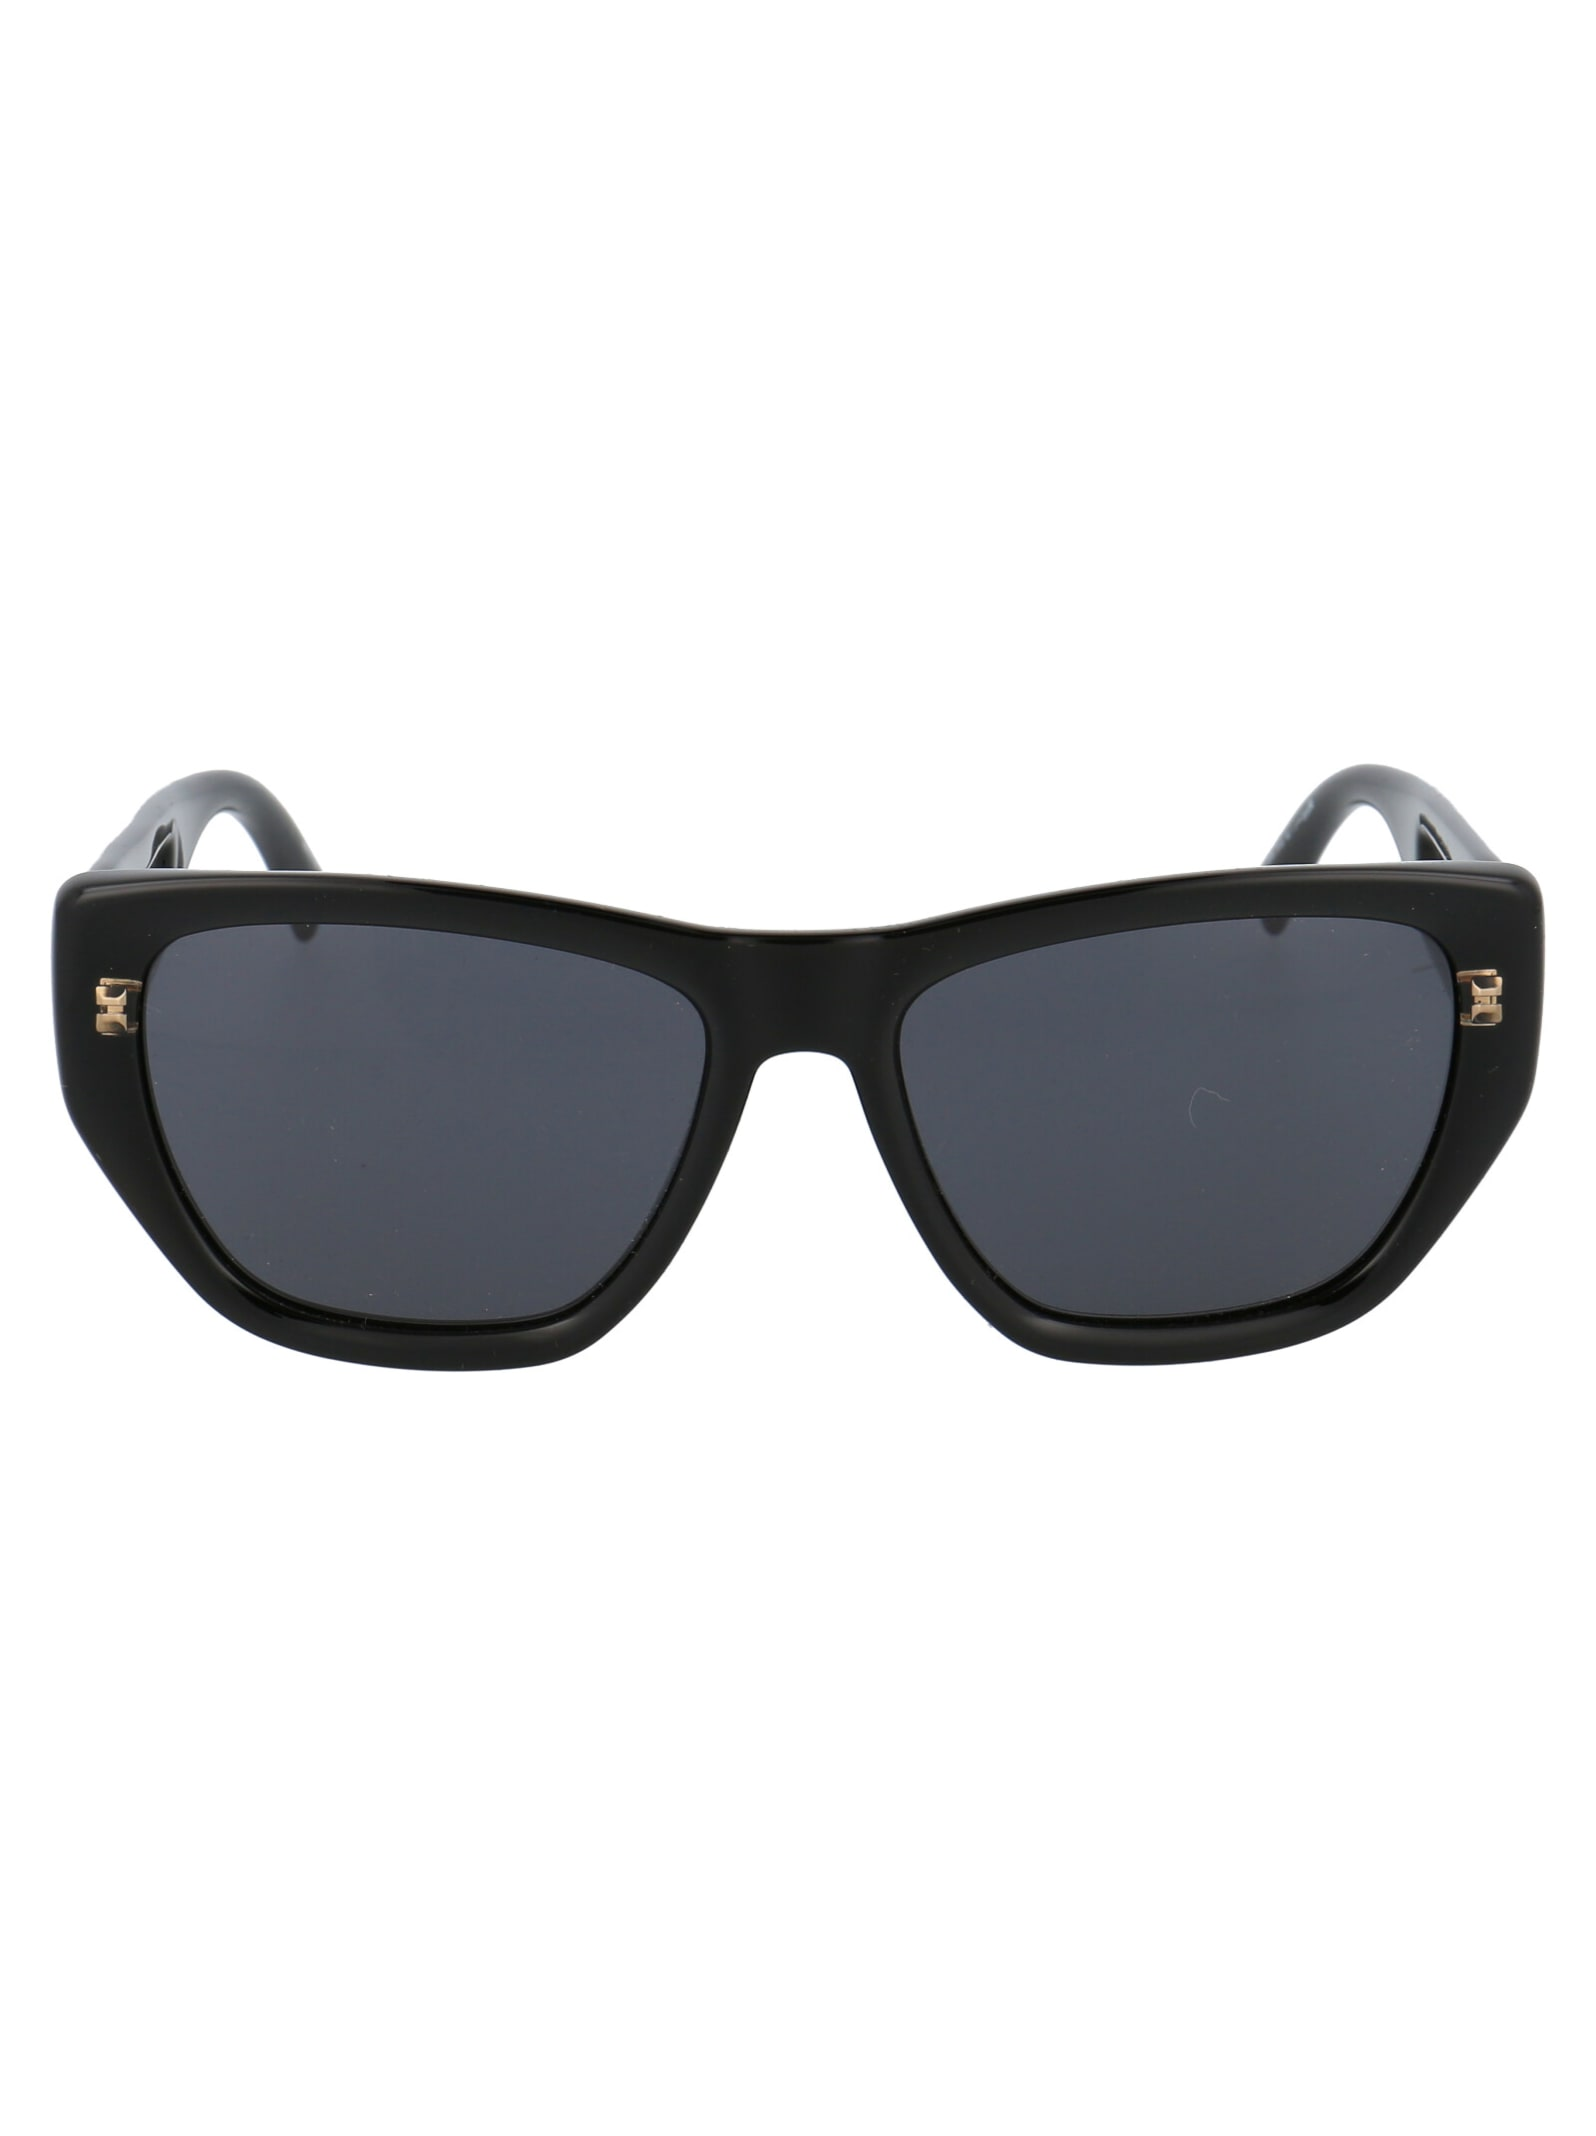 Gv 7202/s Sunglasses